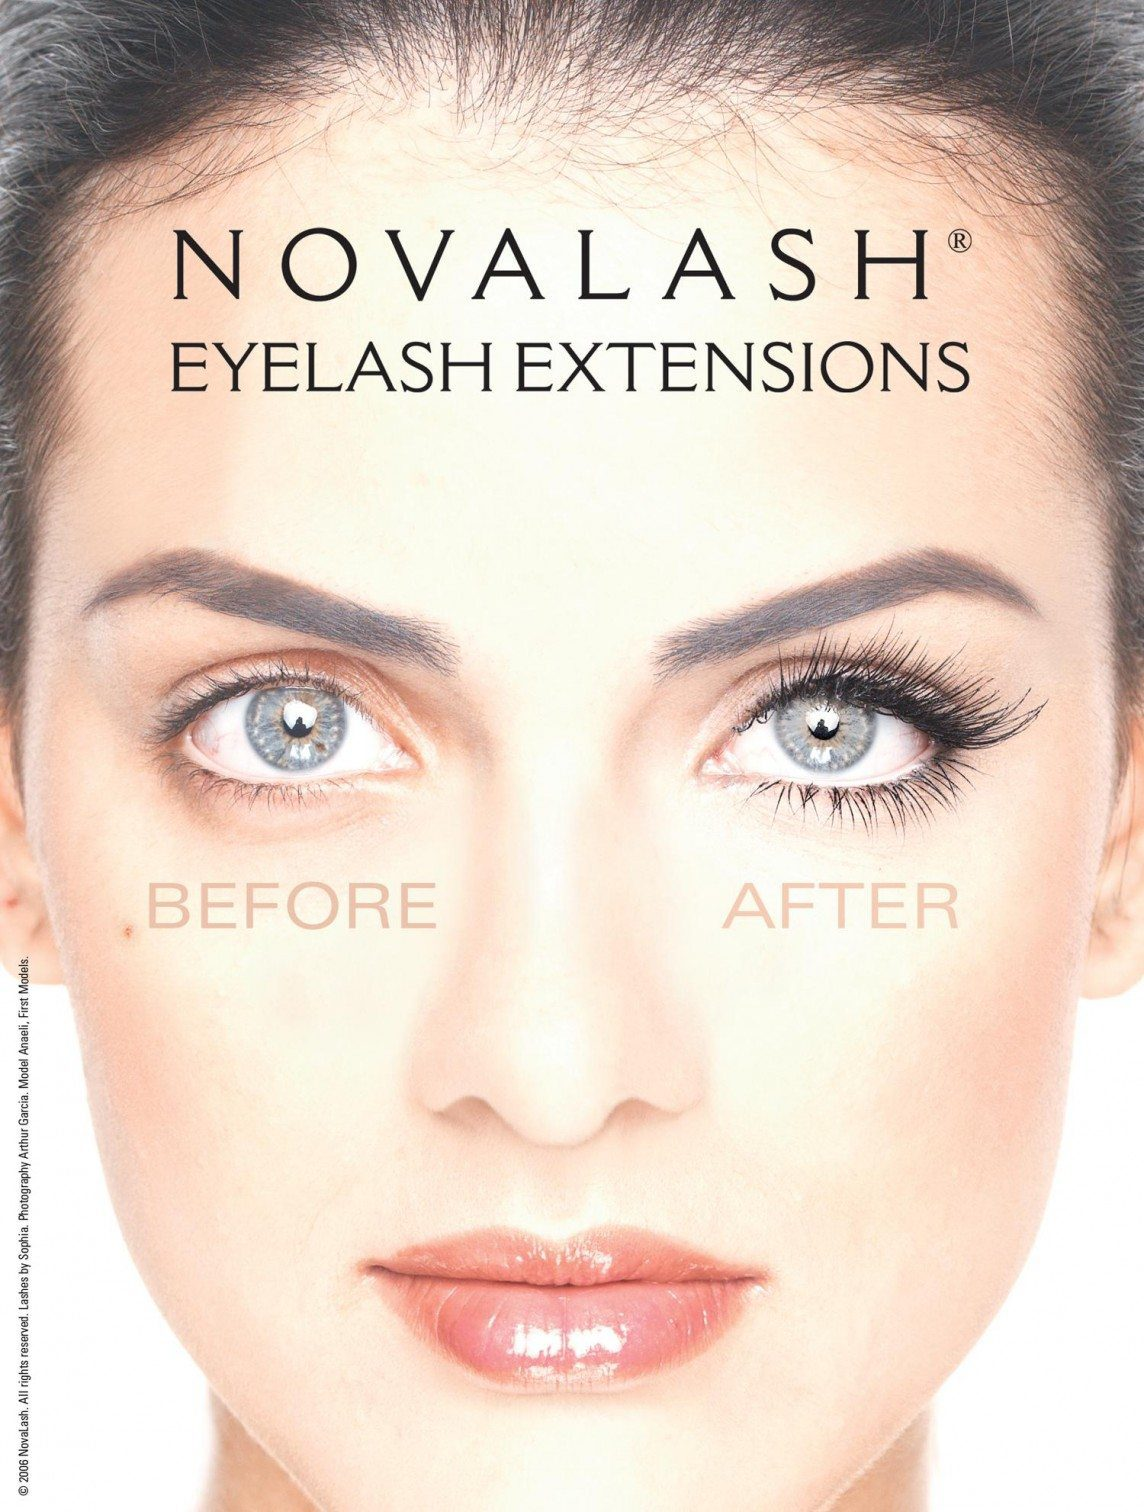 eyelash-extension-novalash